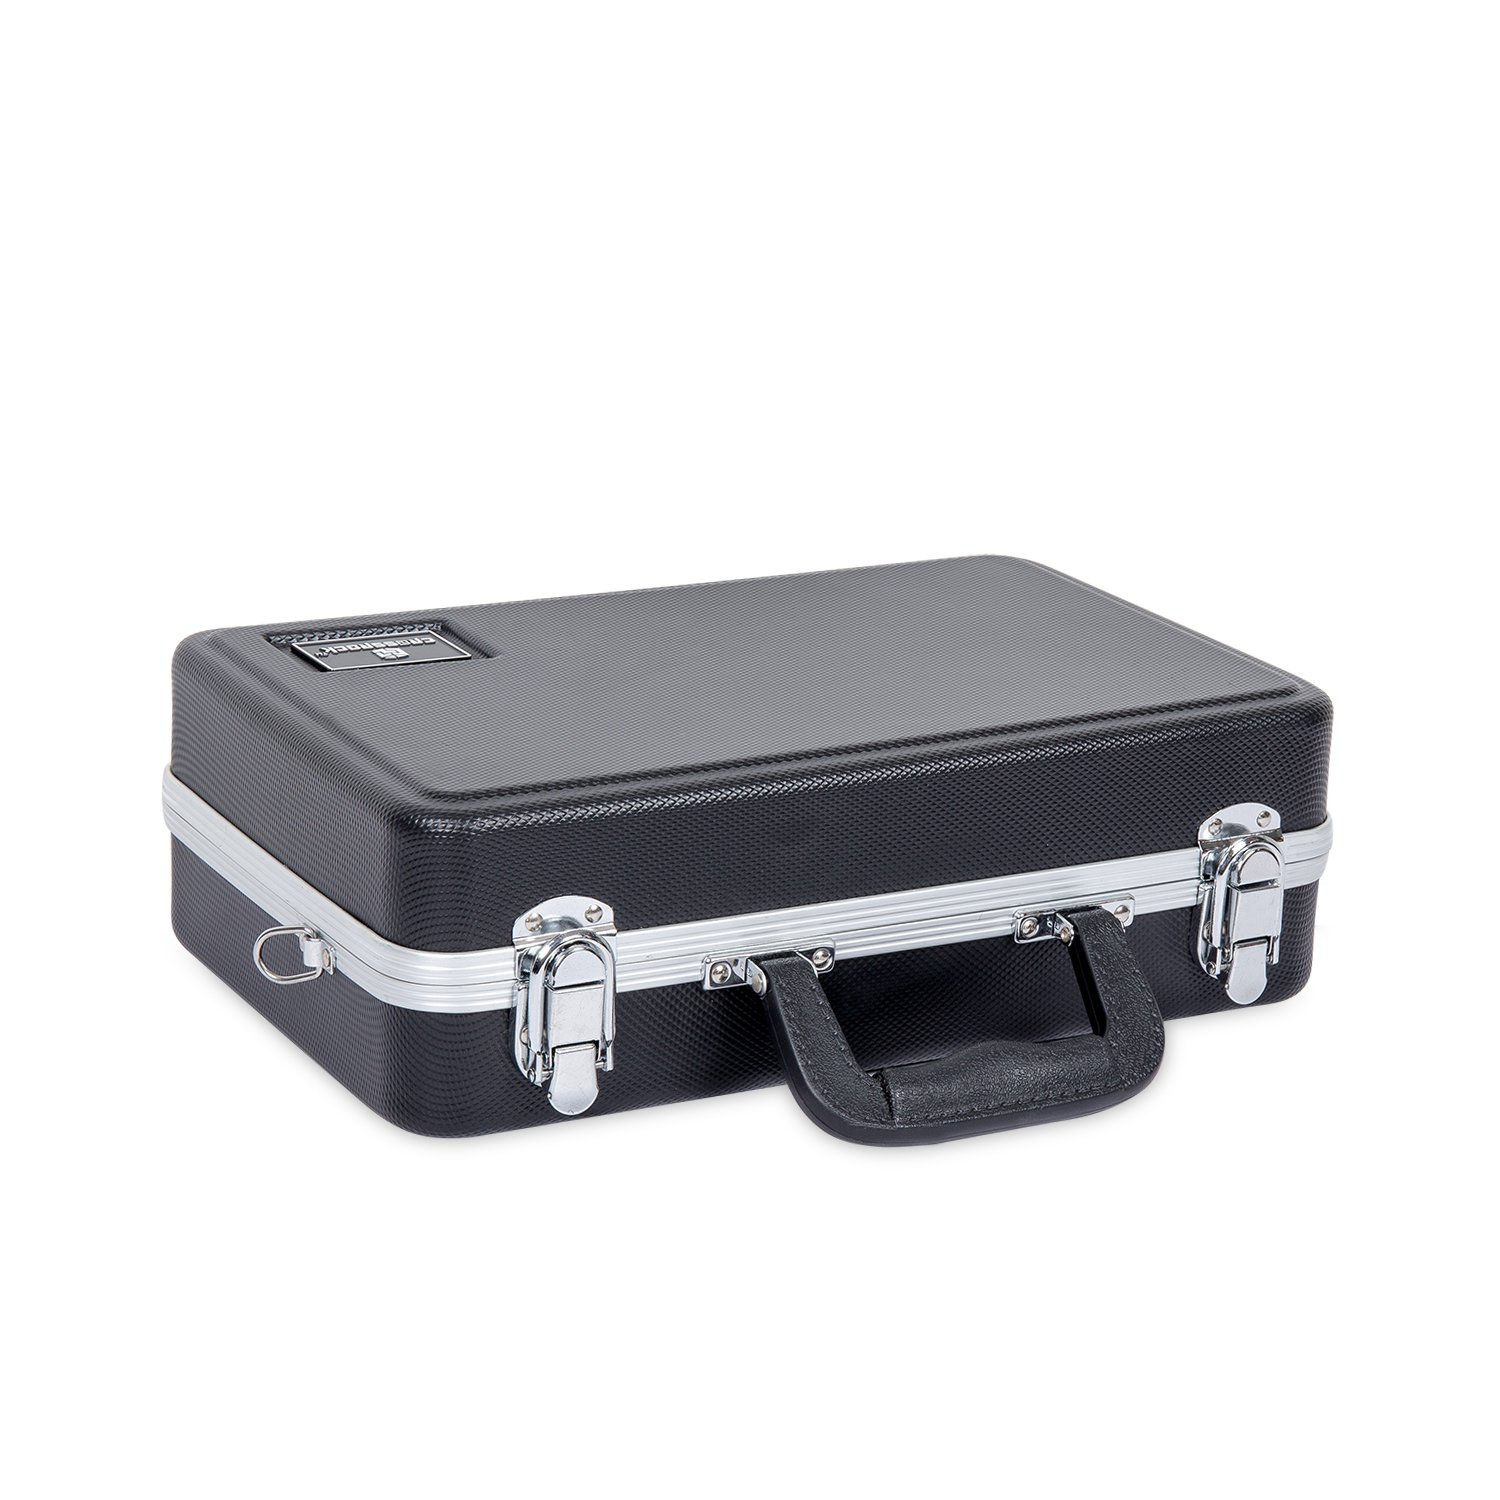 Crossrock CRA860CLBK Clarinet ABS Molded Hard Shell Case with Single Shoulder Strap in Black